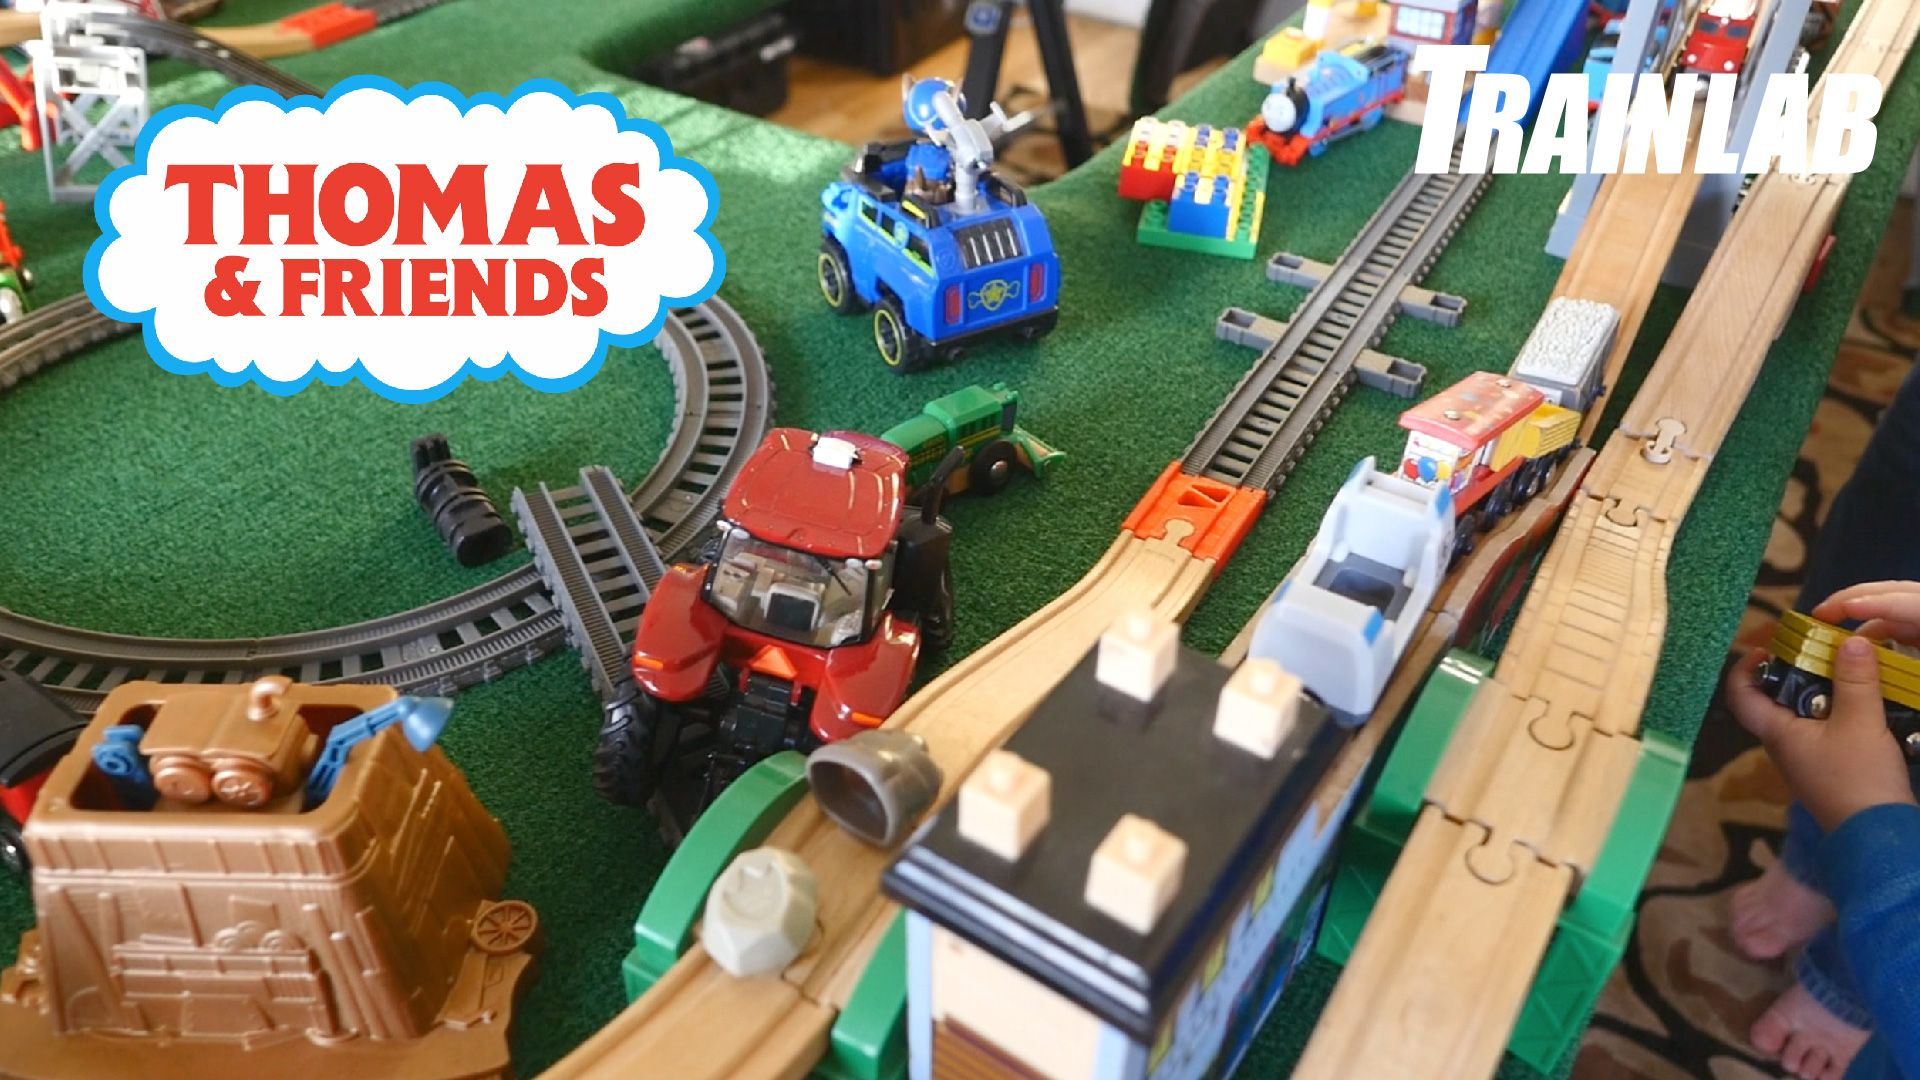 Today on the TrainLab we built a huge train table with a